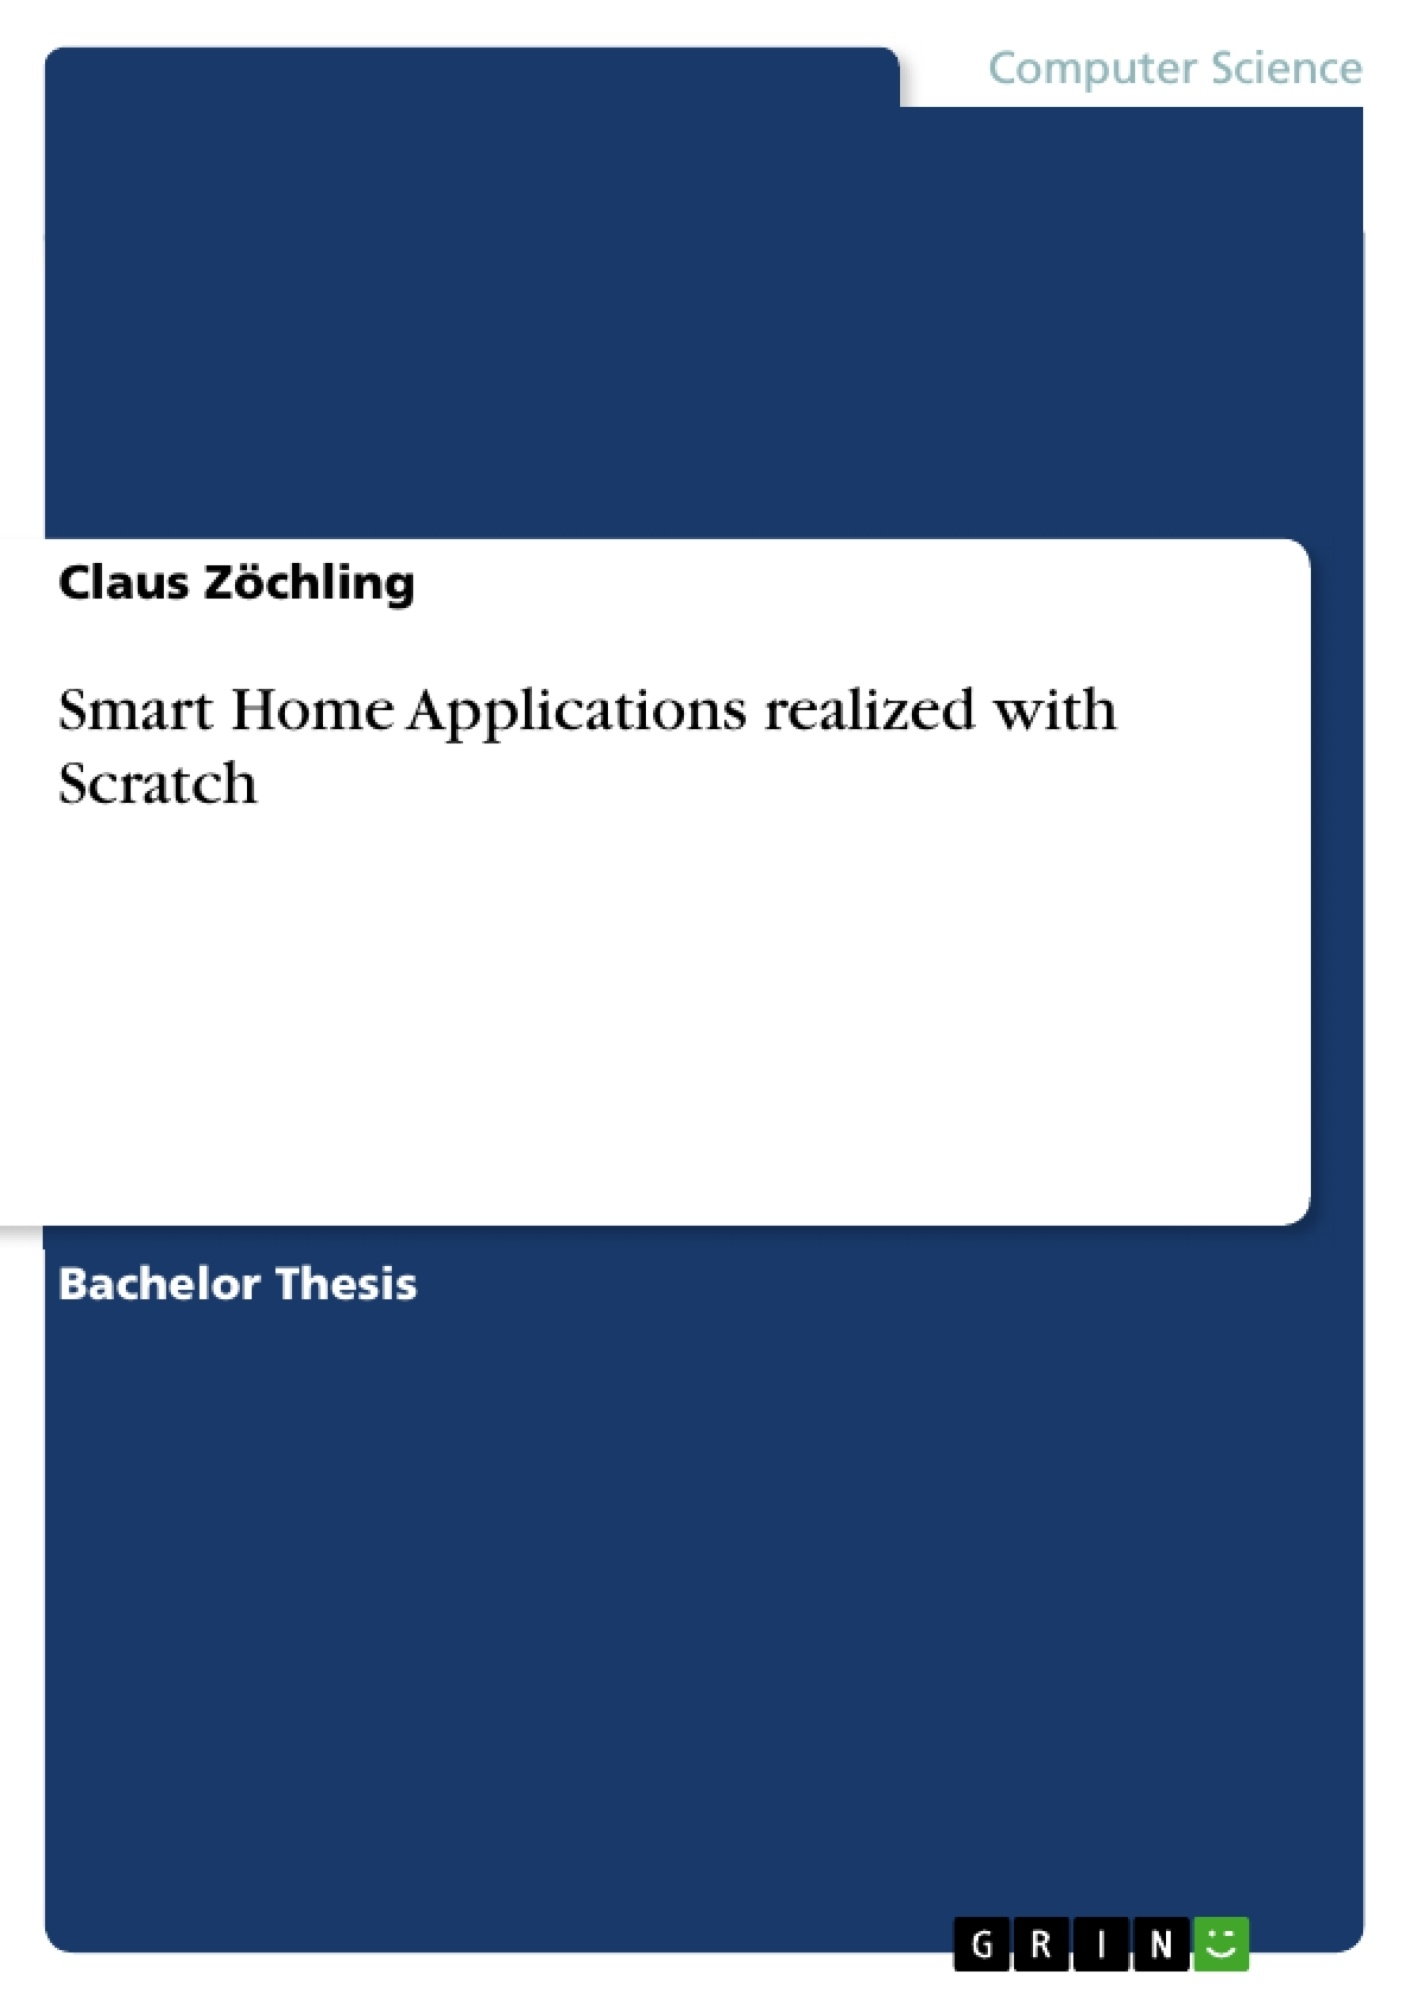 Title: Smart Home Applications realized with Scratch